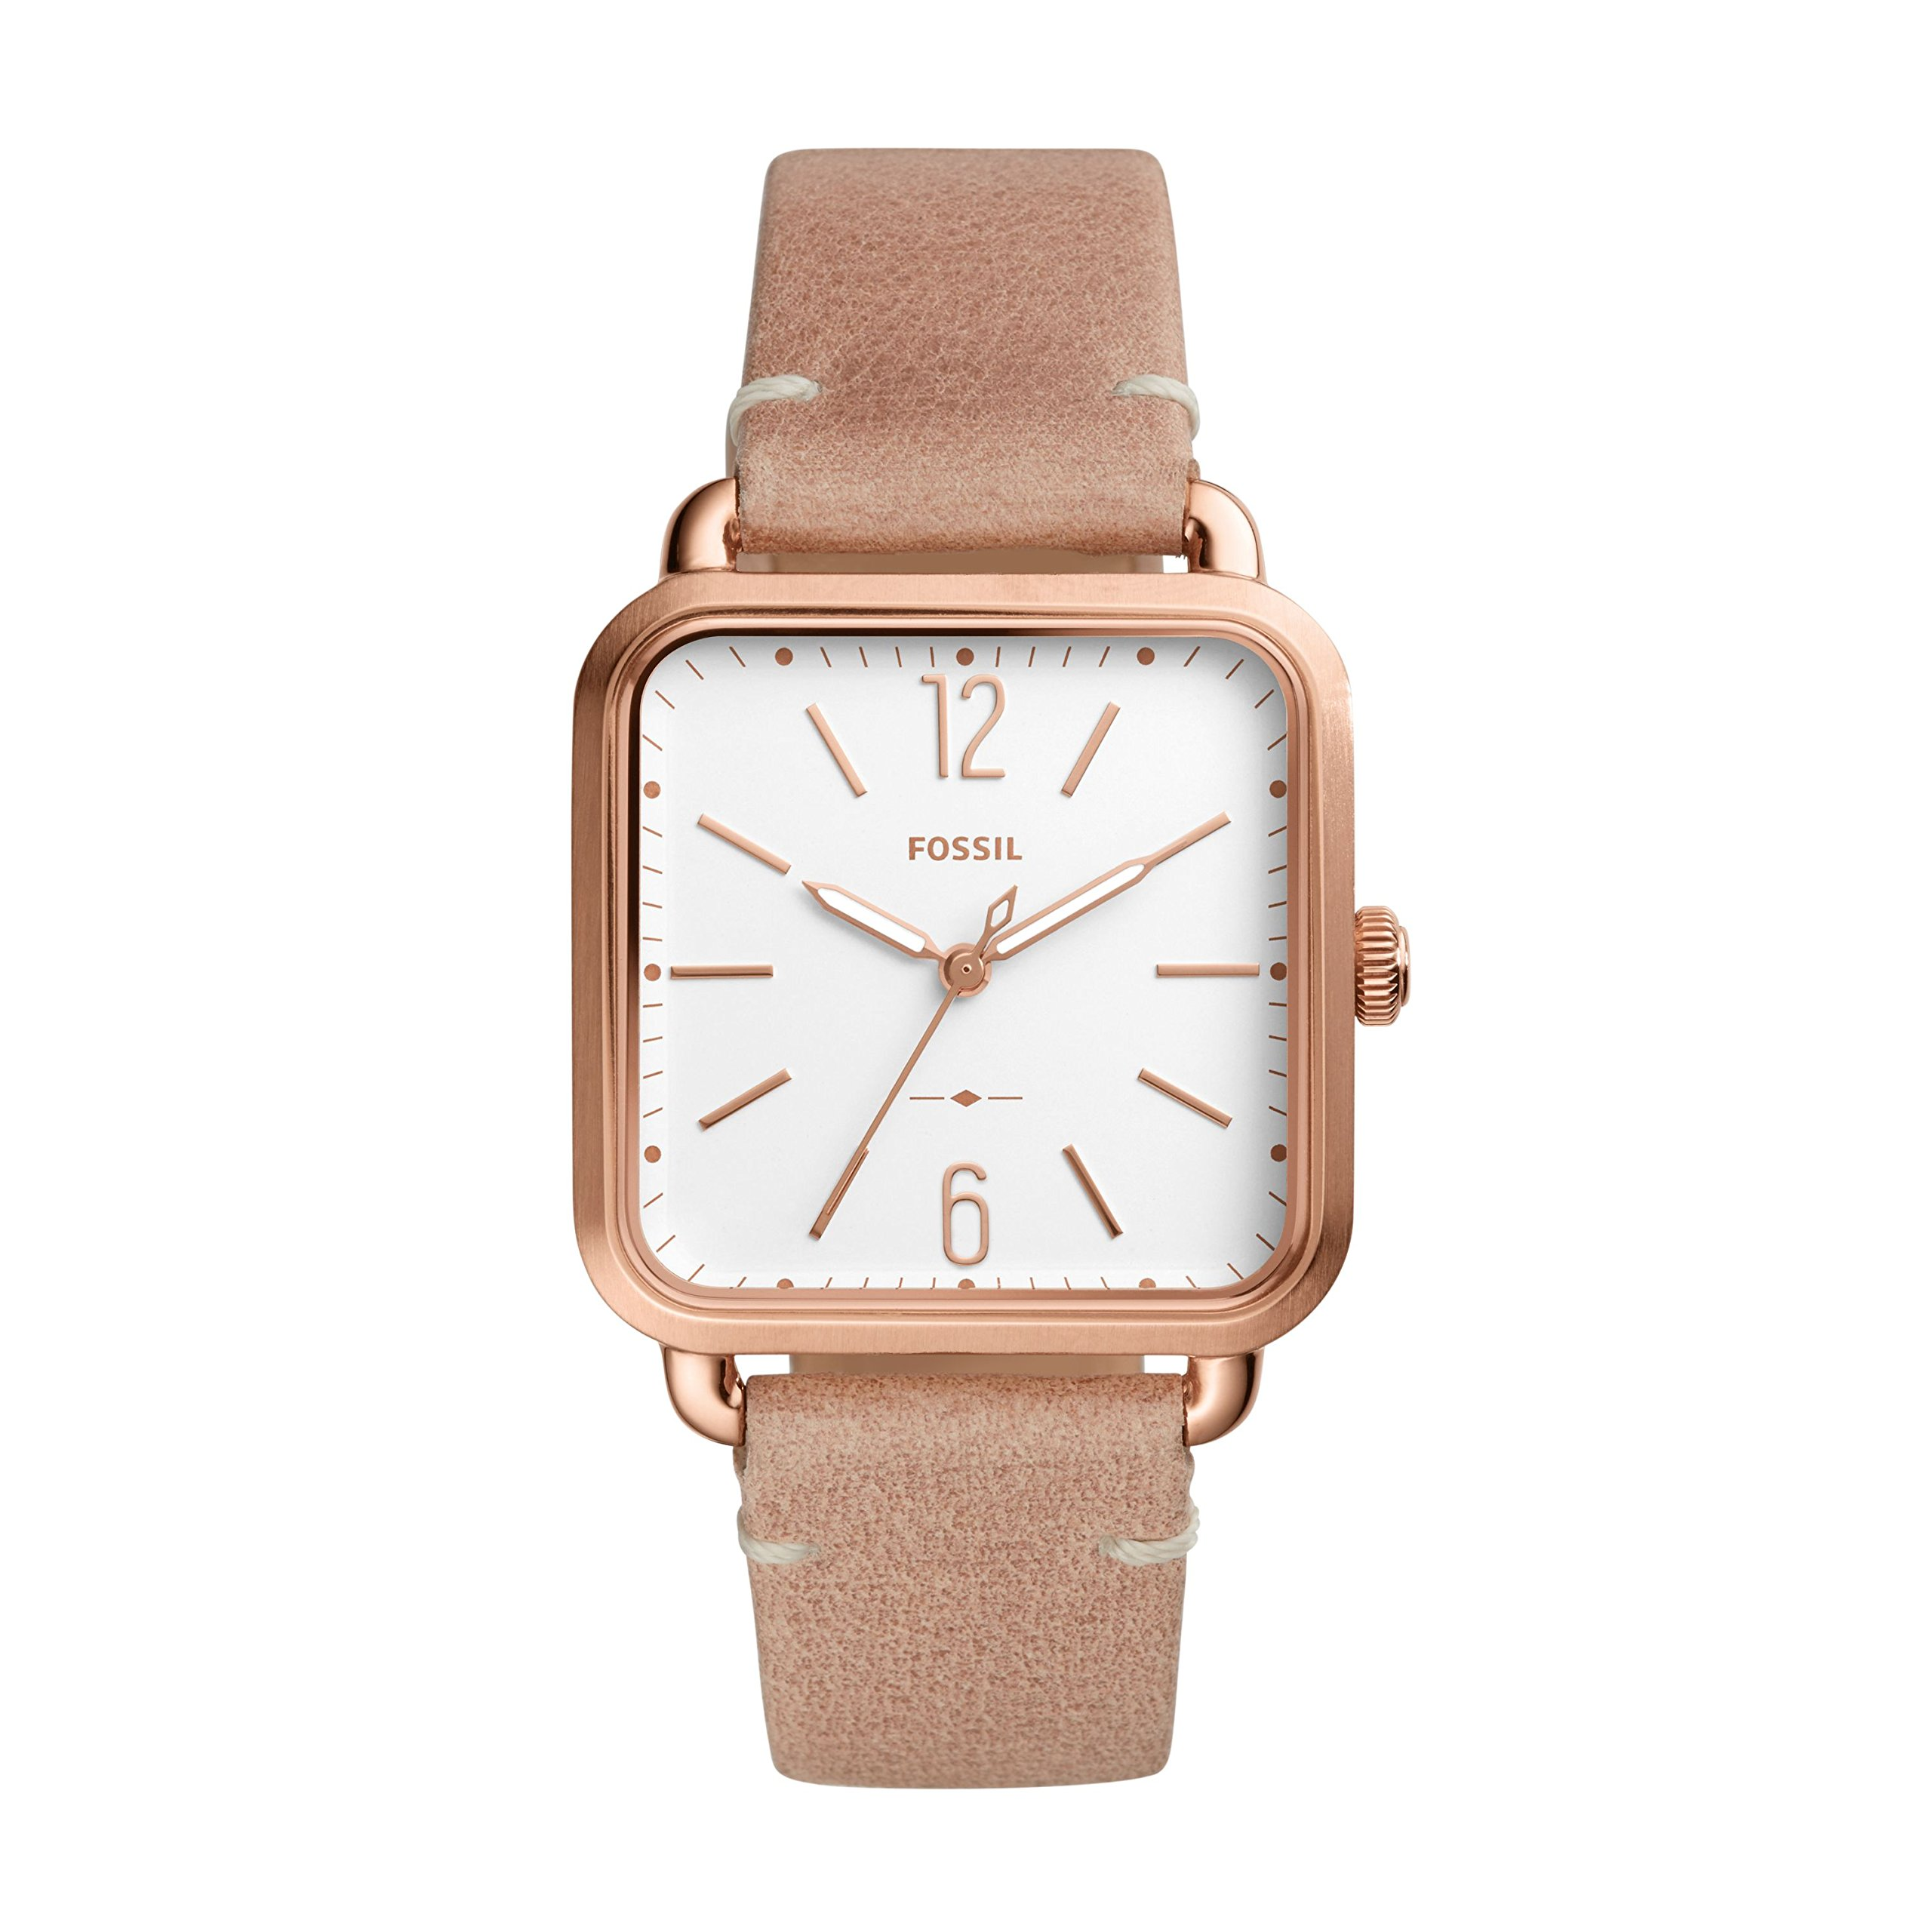 Fossil Women's 'Micah' Quartz Stainless Steel and Leather Casual Watch, Color:Beige (Model: ES4254)